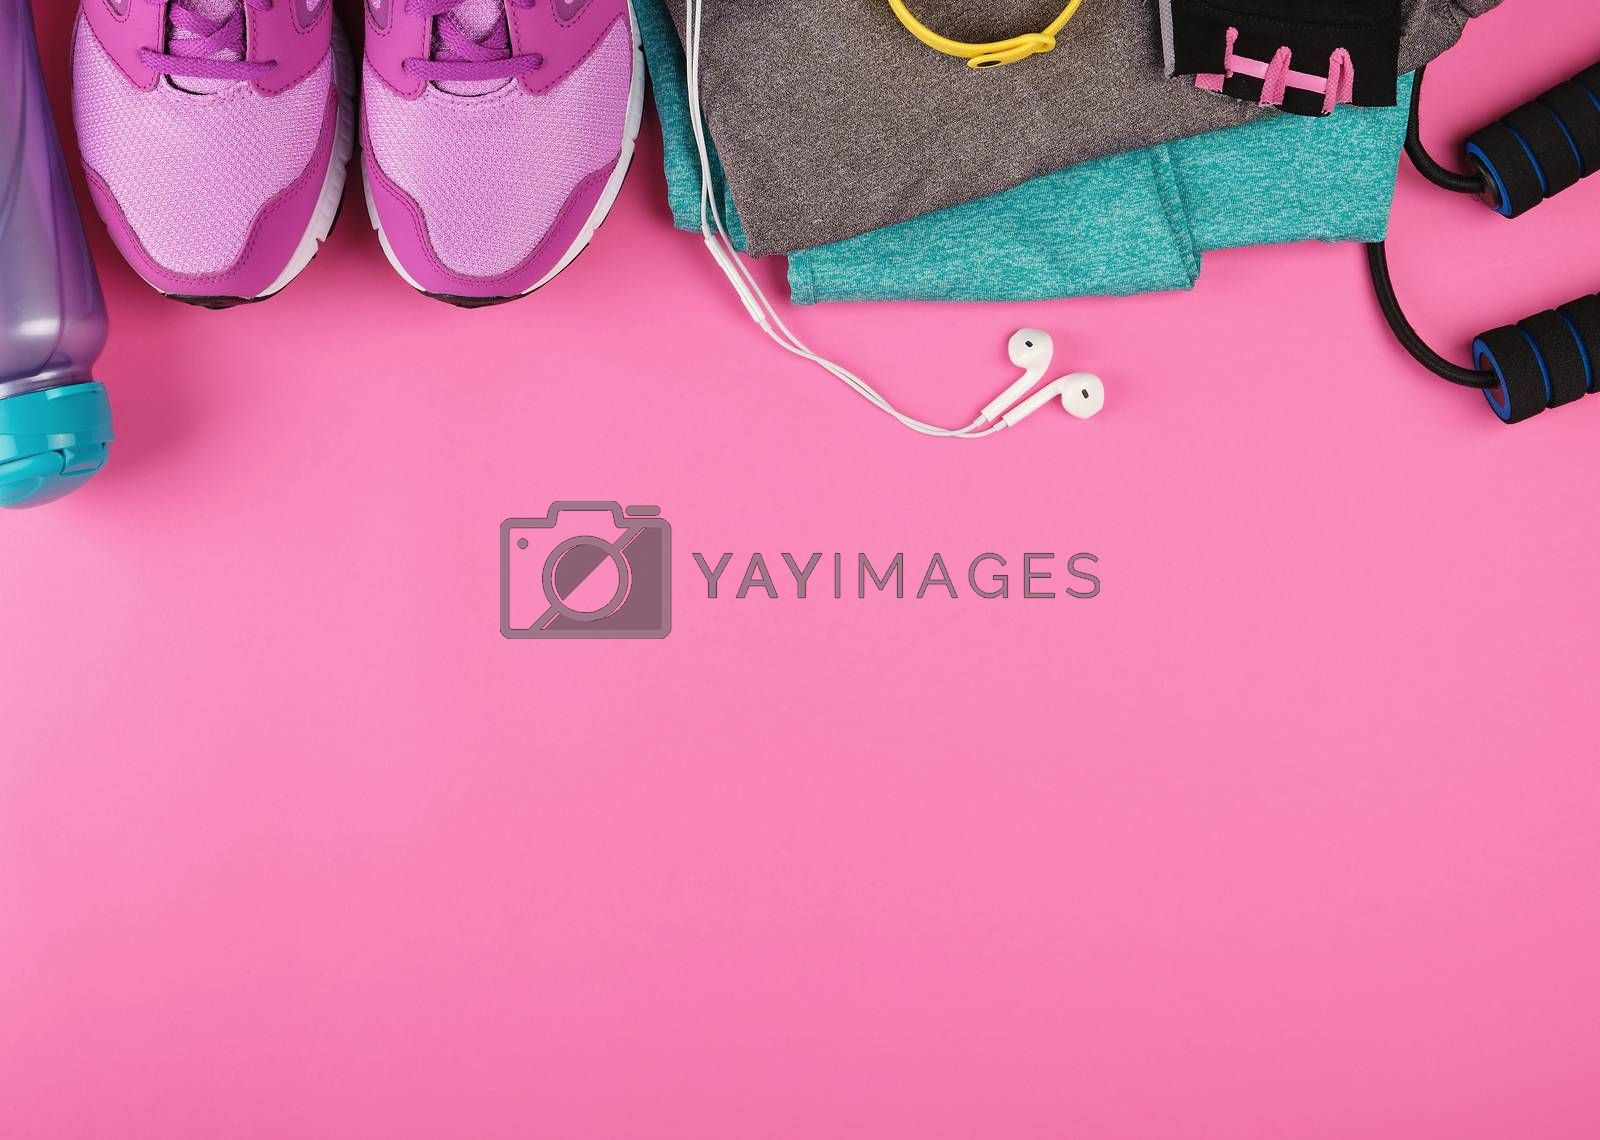 pink women's sneakers, a bottle of water, gloves and a jump rope for sports on a pink background, top view, copy space, flat lay